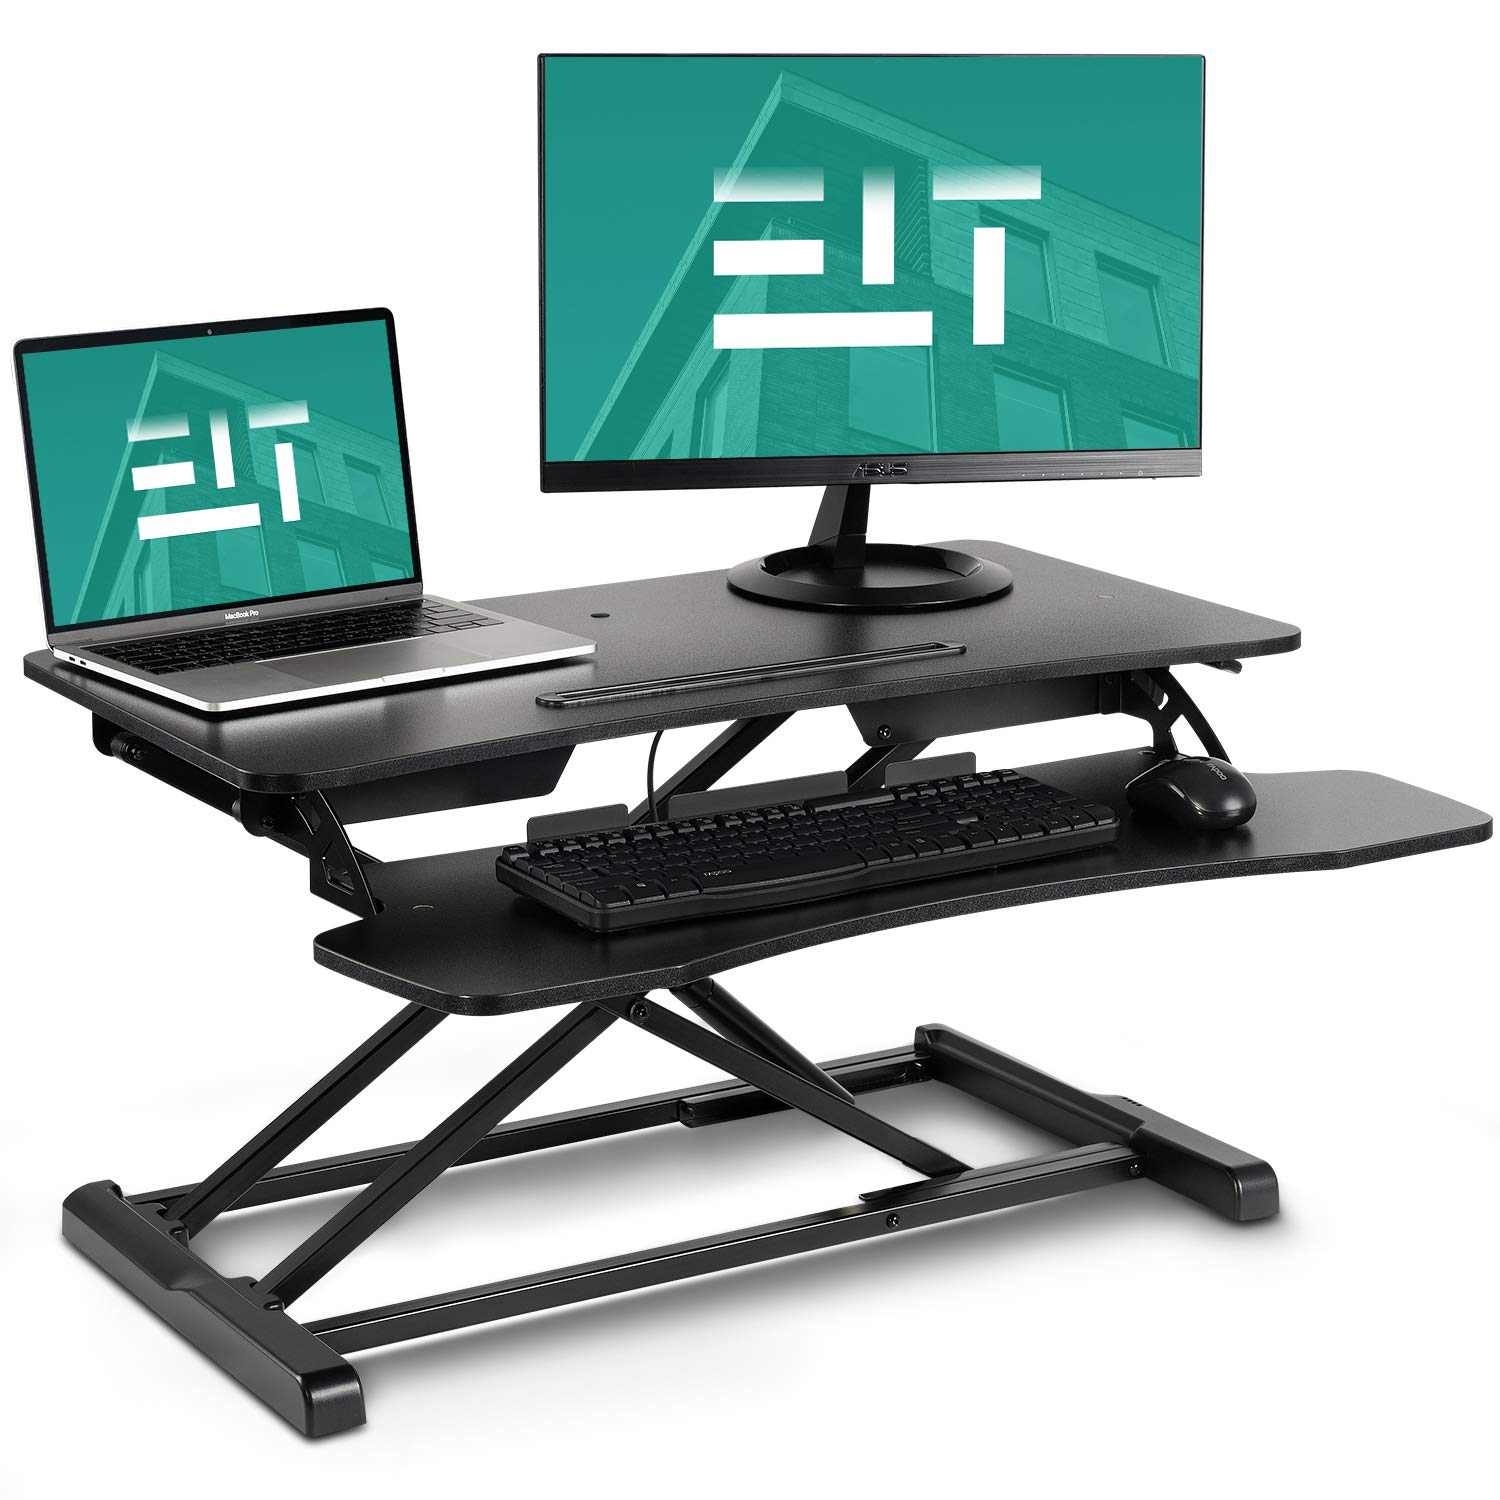 EleTab Standing Desk Converter Sit Stand Desk Riser Stand up Desk Tabletop Workstation fits Dual Monitor 32 inches Black by EleTab